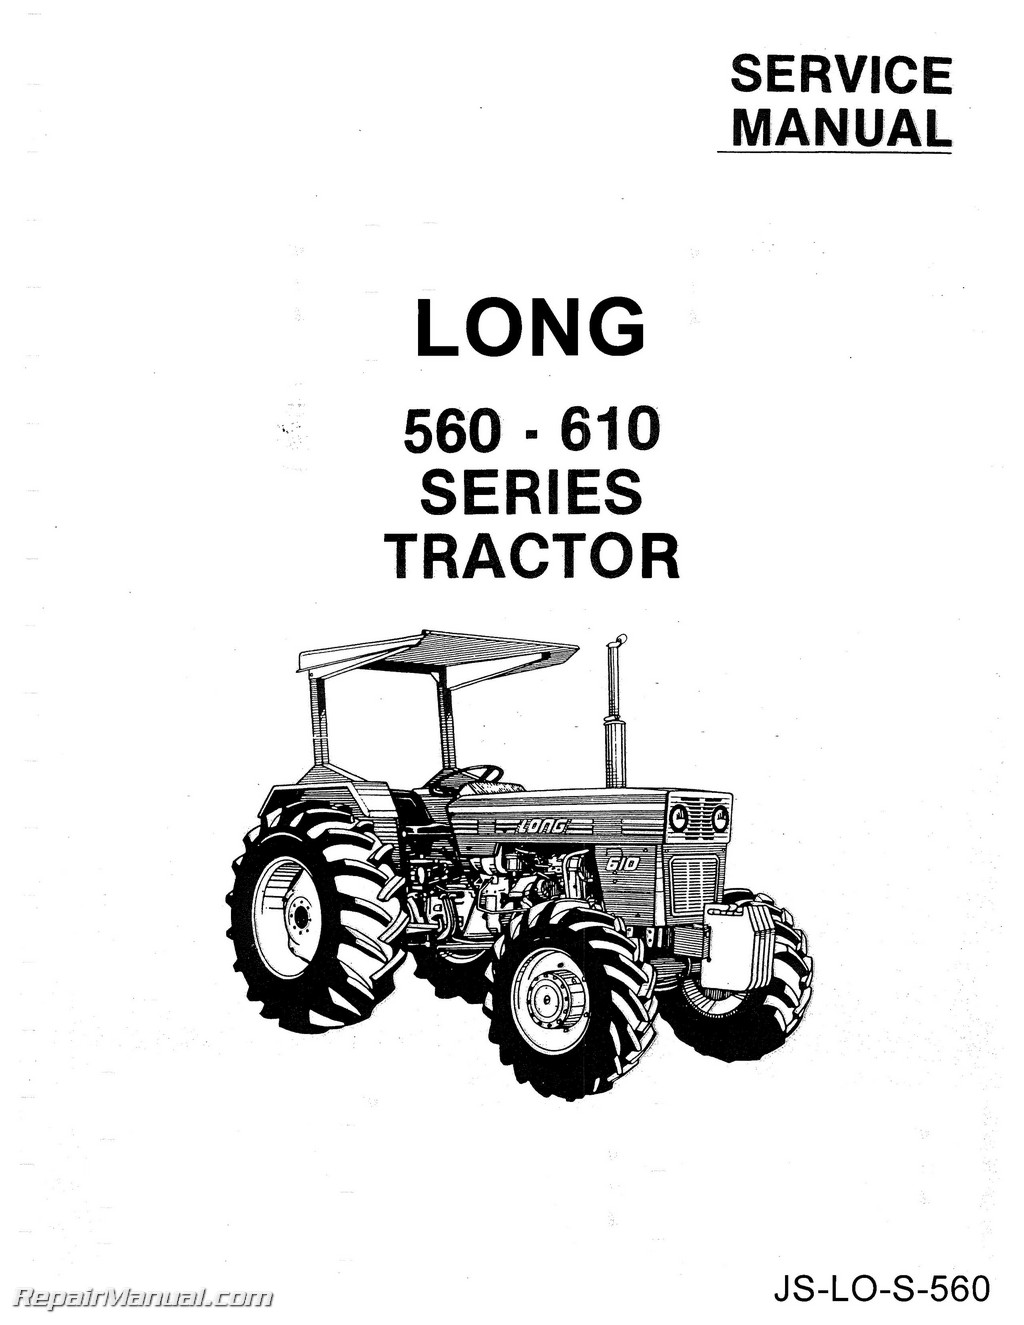 long 560 610 tractor service workshop repair manual rh repairmanual com tractor service manuals free download tractor service manual pdf free